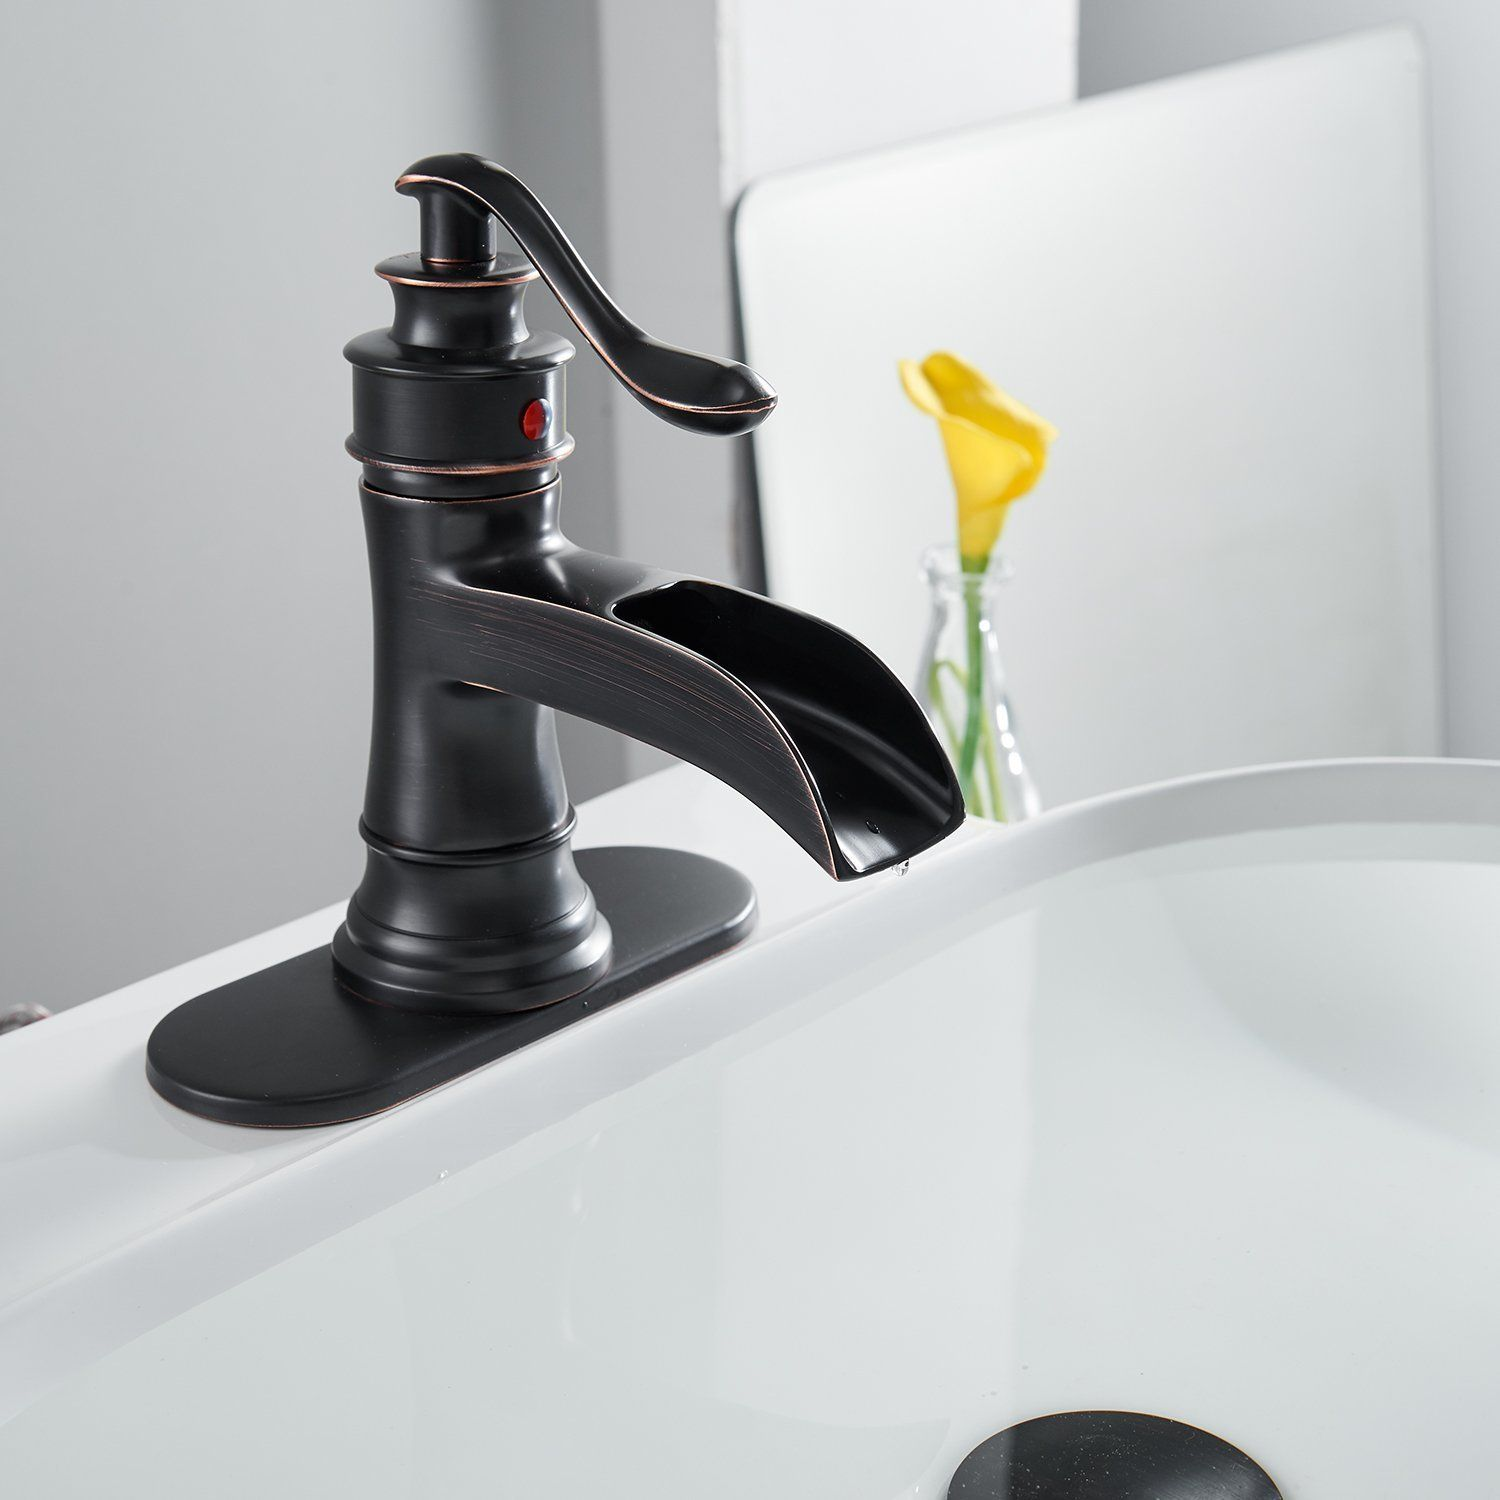 Bwe Waterfall Spout Single Handle Bathroom Sink Faucet Basin Mixer Taporb Oil R Oil Rubbed Bronze Bathroom Faucets Bathroom Sink Faucets Bronze Bronze Bathroom